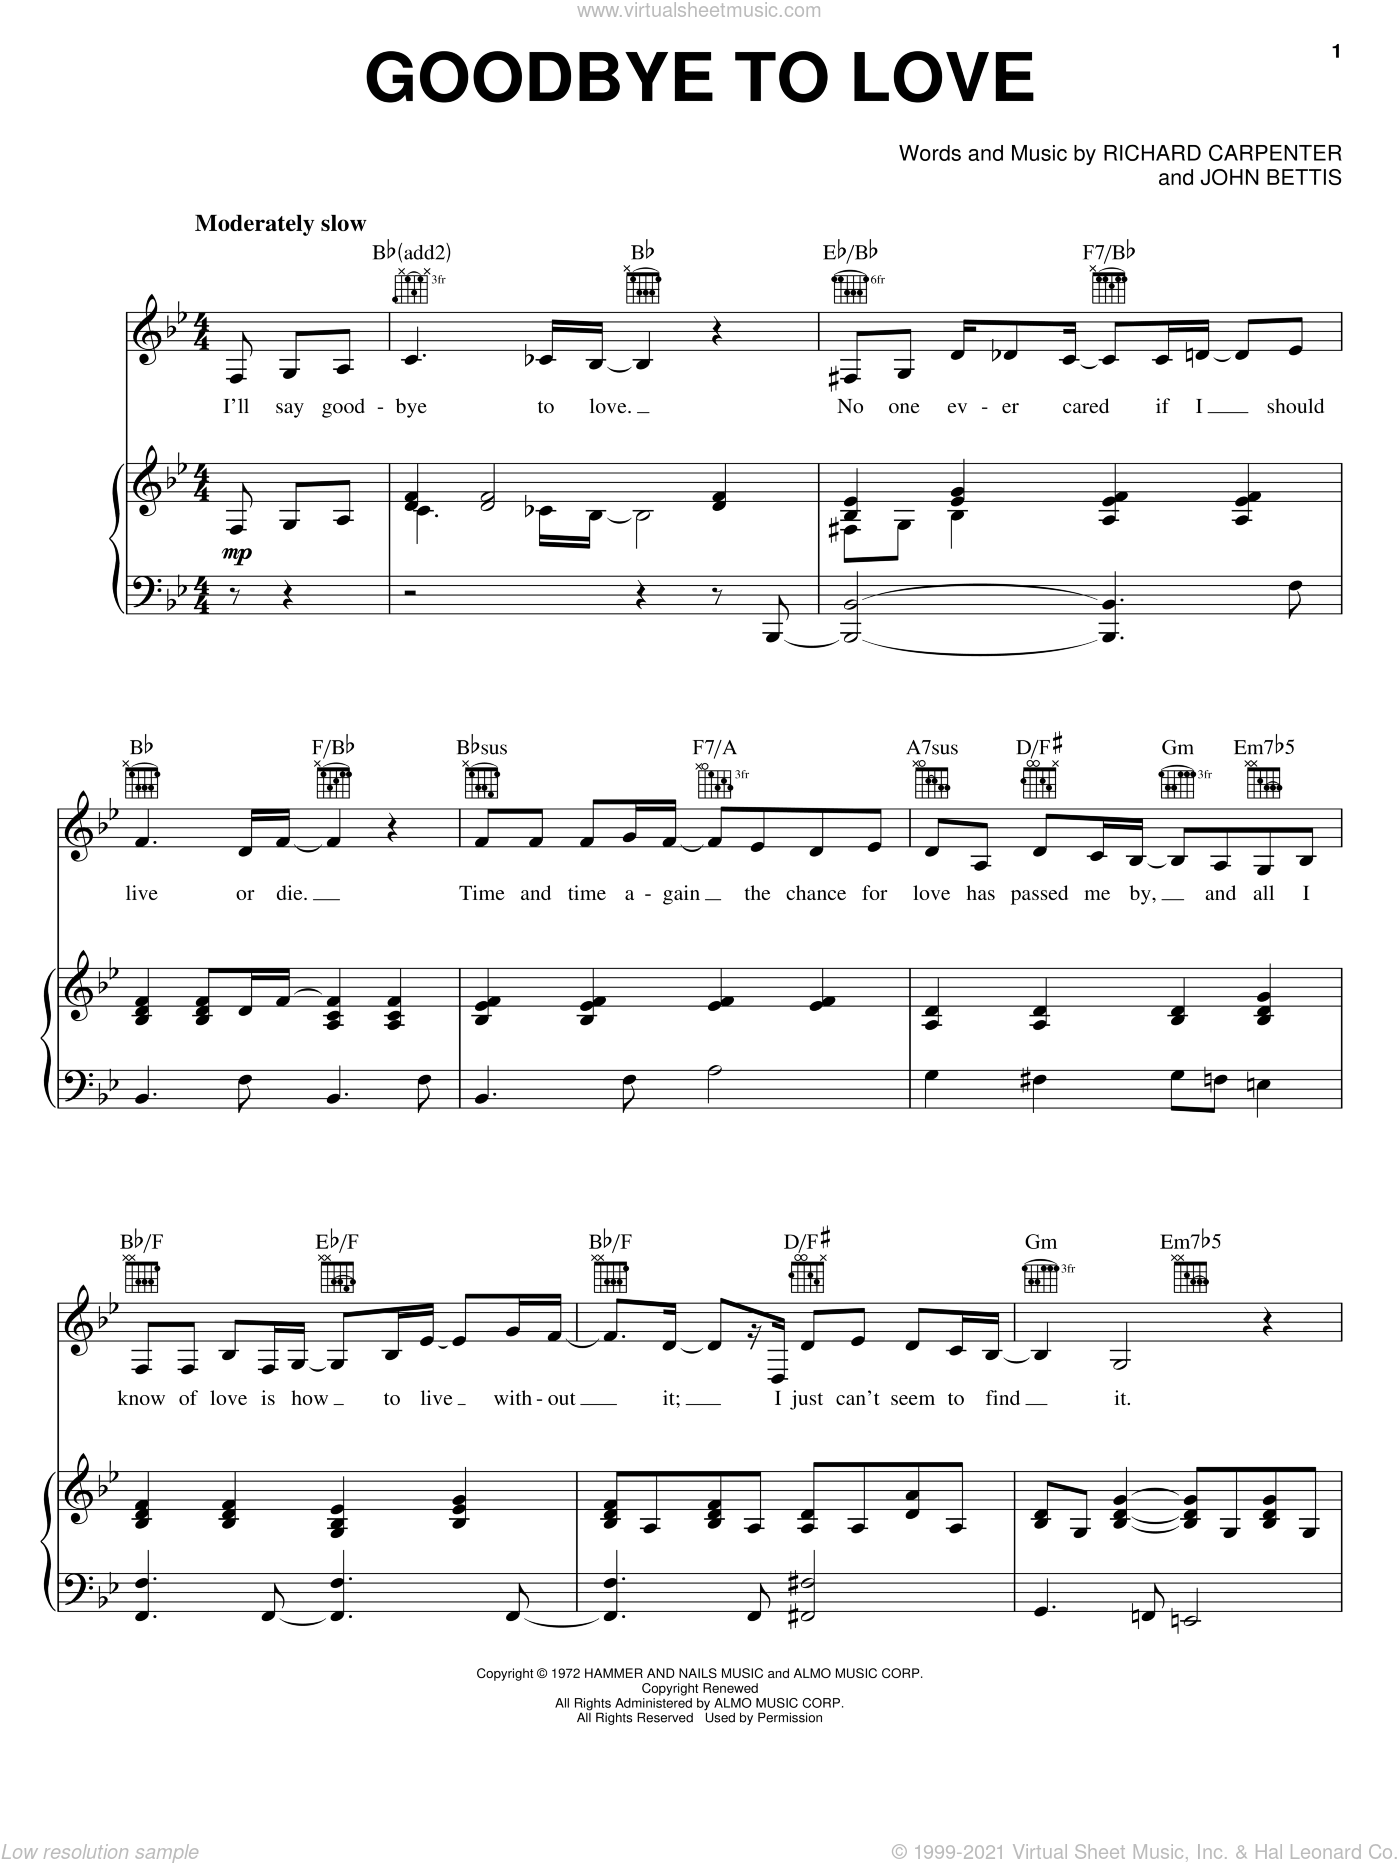 Goodbye To Love sheet music for voice, piano or guitar by Carpenters, John Bettis and Richard Carpenter, intermediate skill level